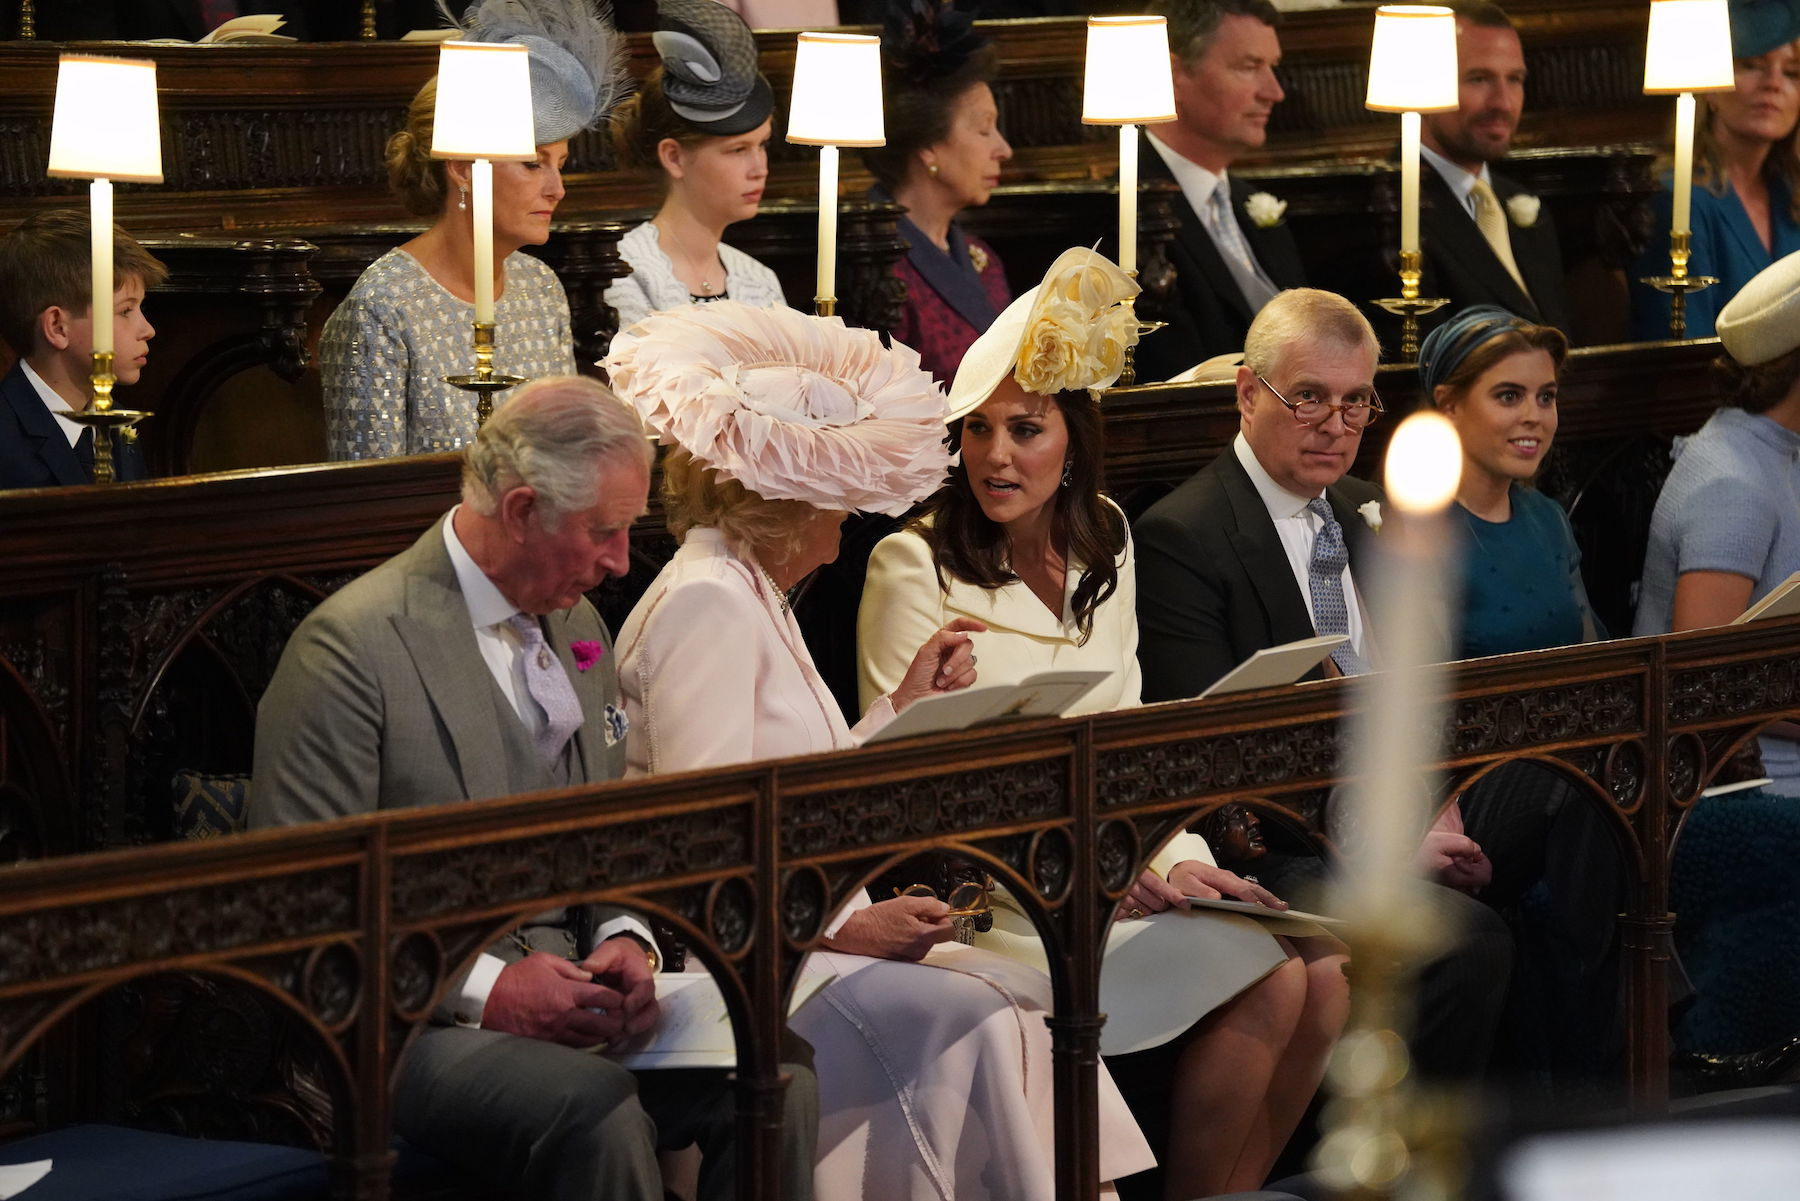 Kate Middleton Attends Royal Wedding